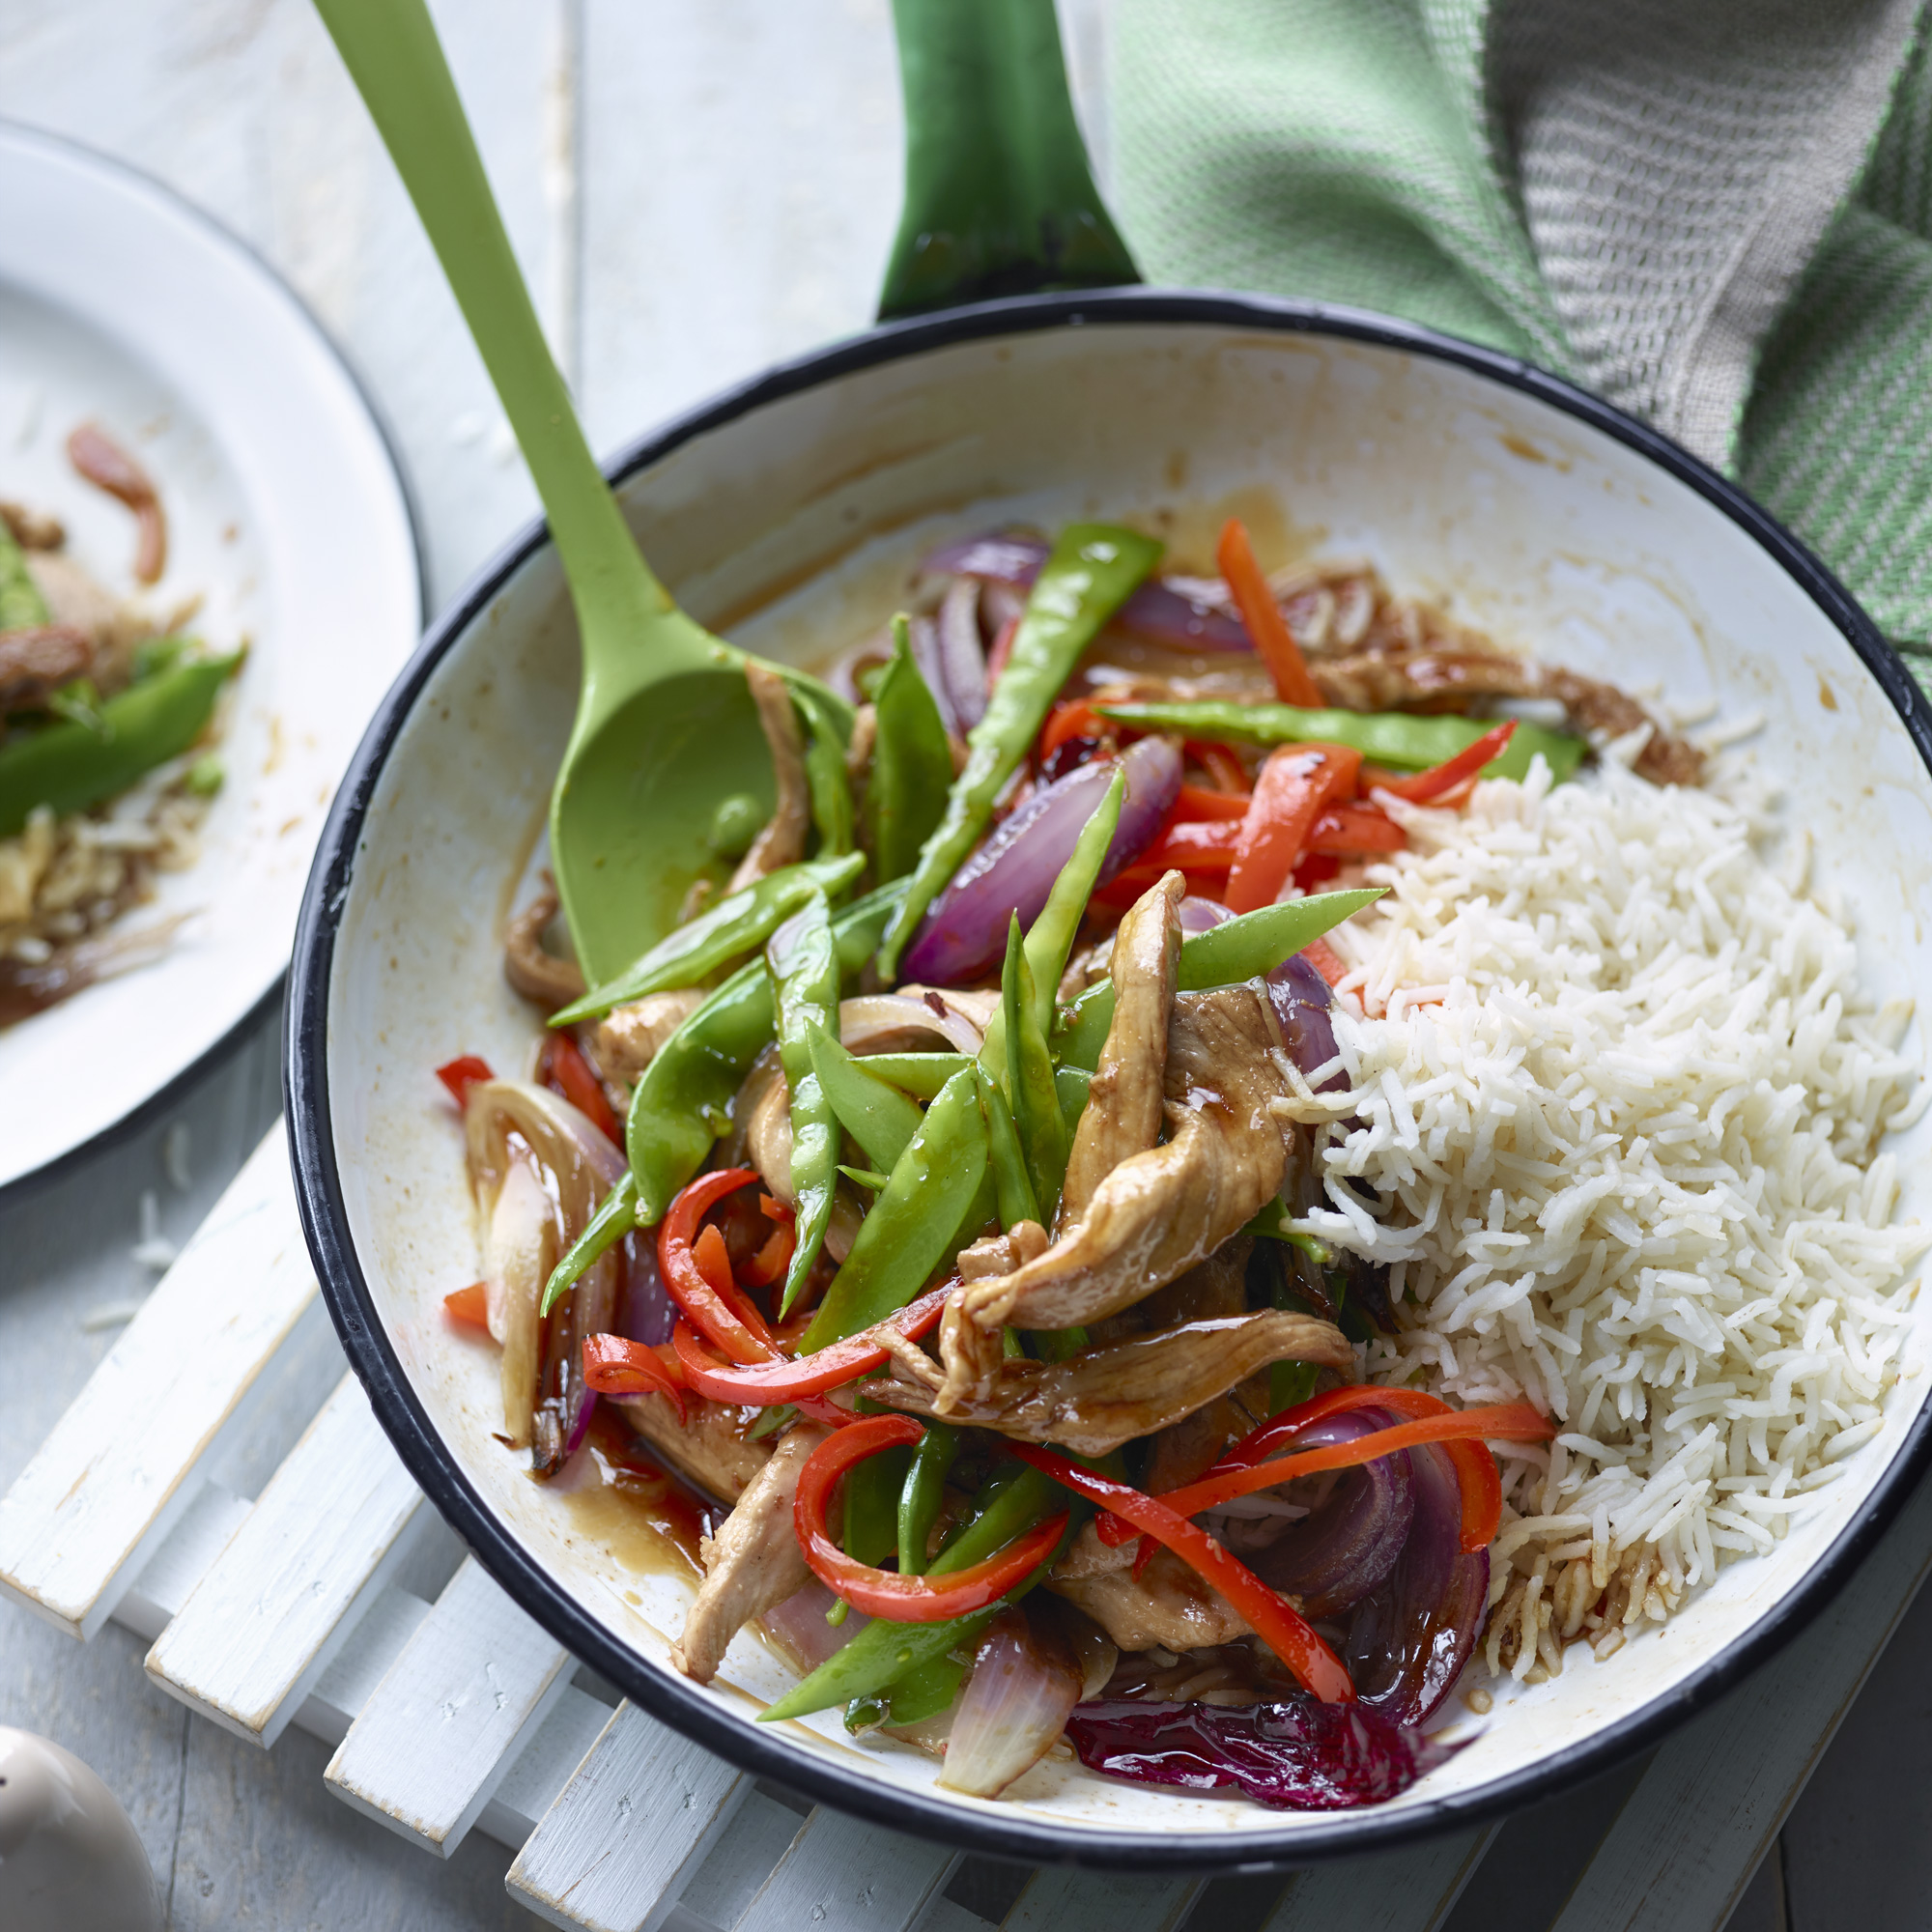 Joe wicks sweet and sour pork with rice forumfinder Choice Image